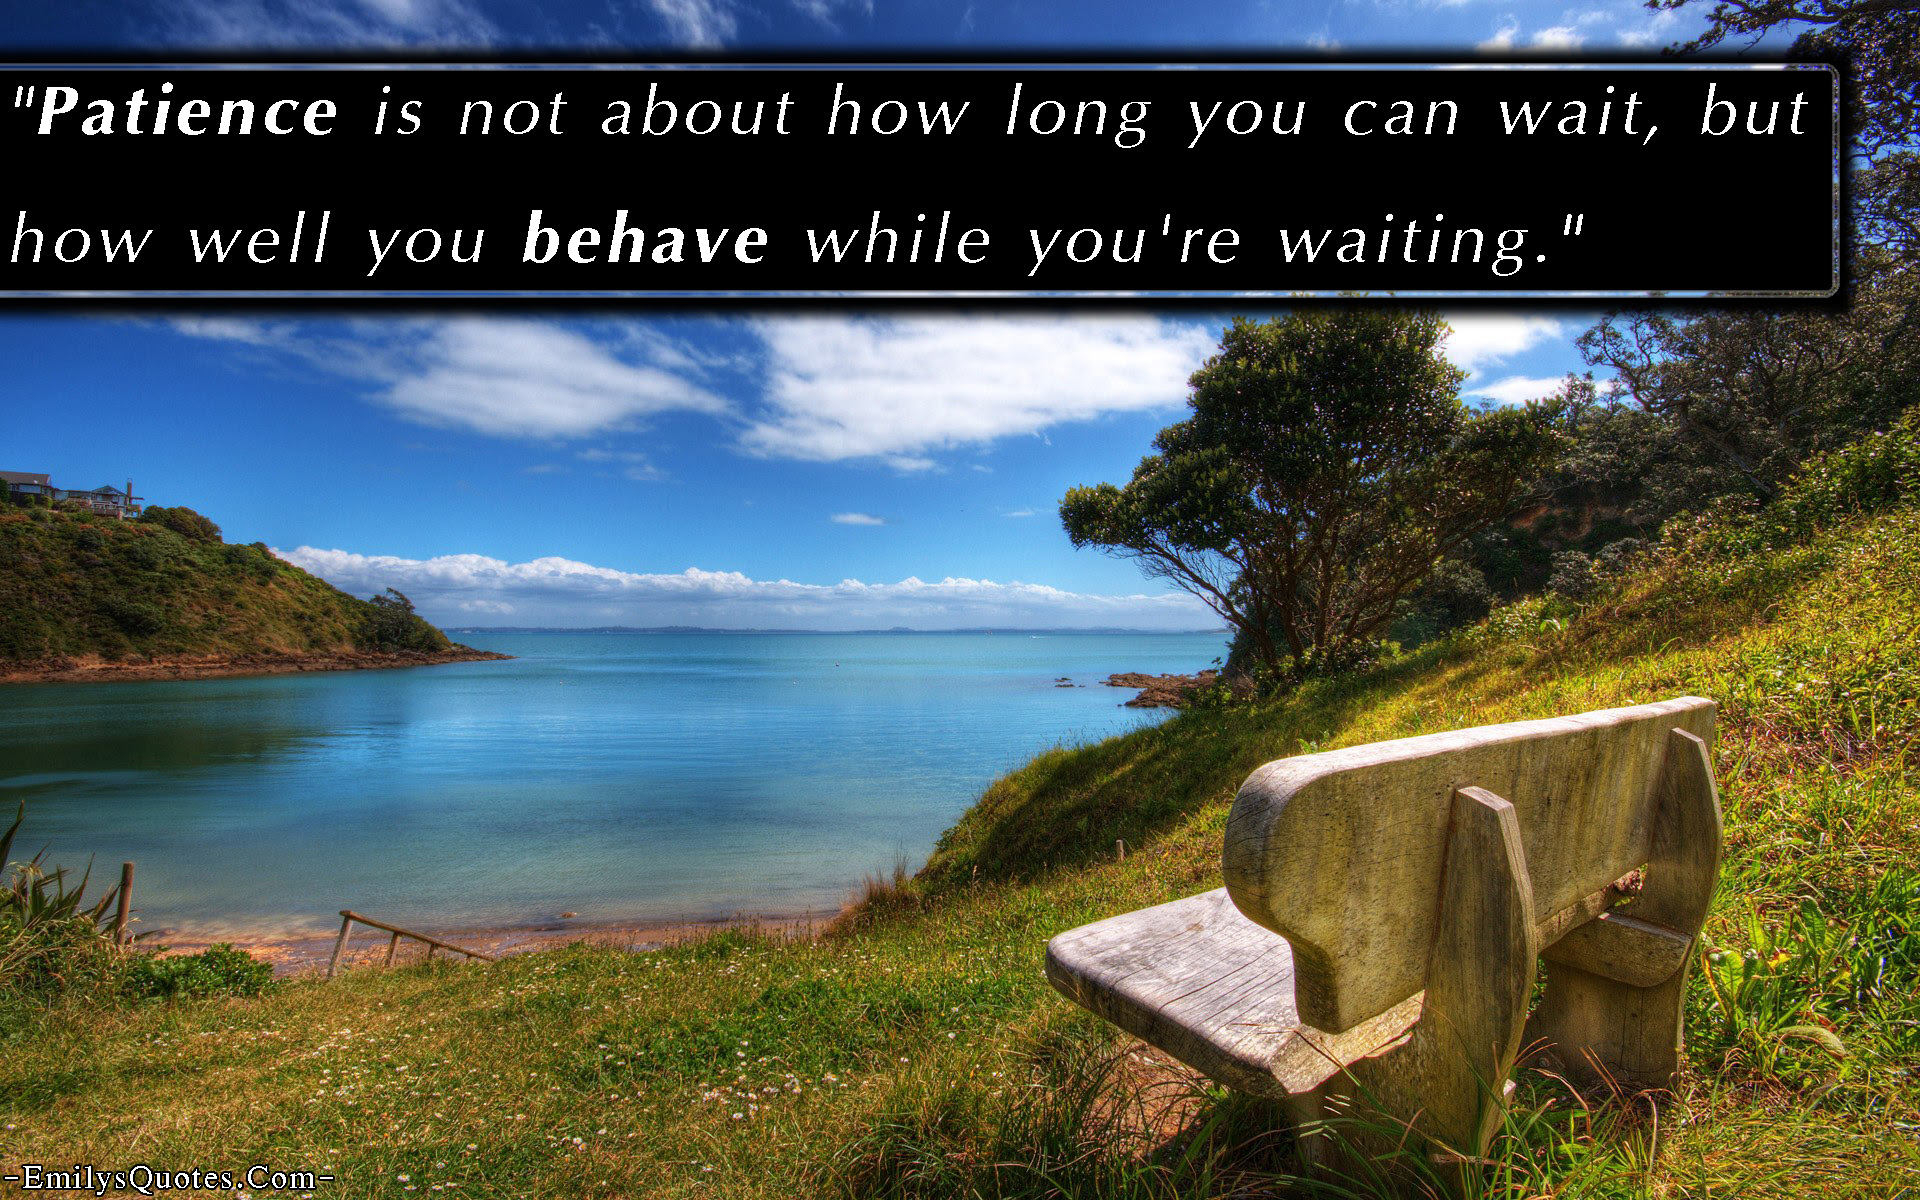 Patience Is Not About How Long You Can Wait But How Well You Behave